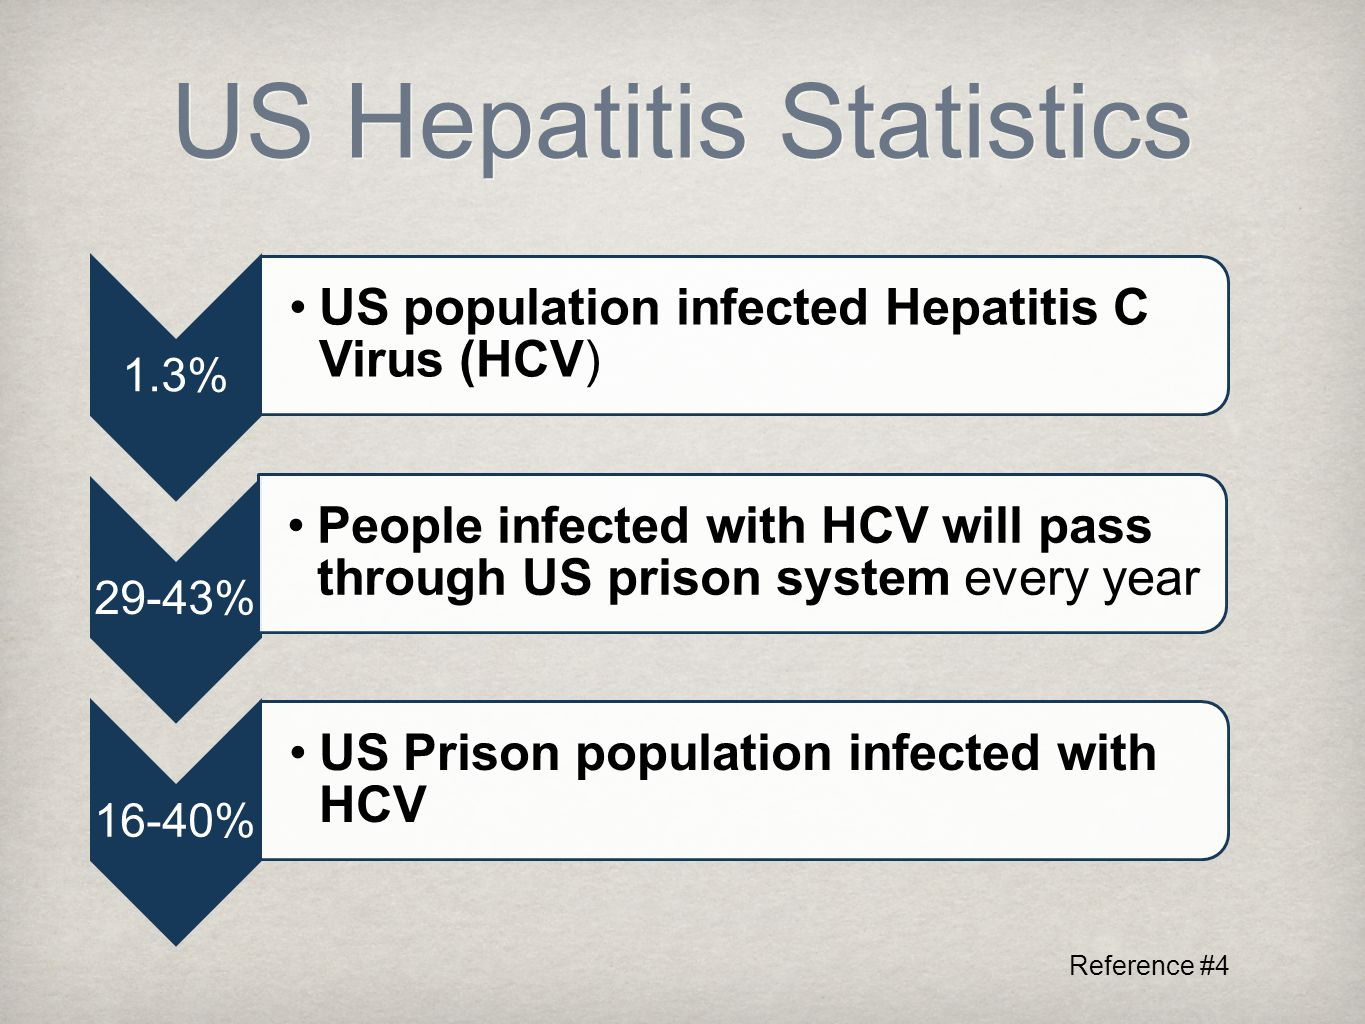 US Hepatitis Statistics 1.3% US population infected Hepatitis C Virus (HCV) 29-43% People infected with HCV will pass through US prison system every year 16-40% US Prison population infected with HCV Reference #4